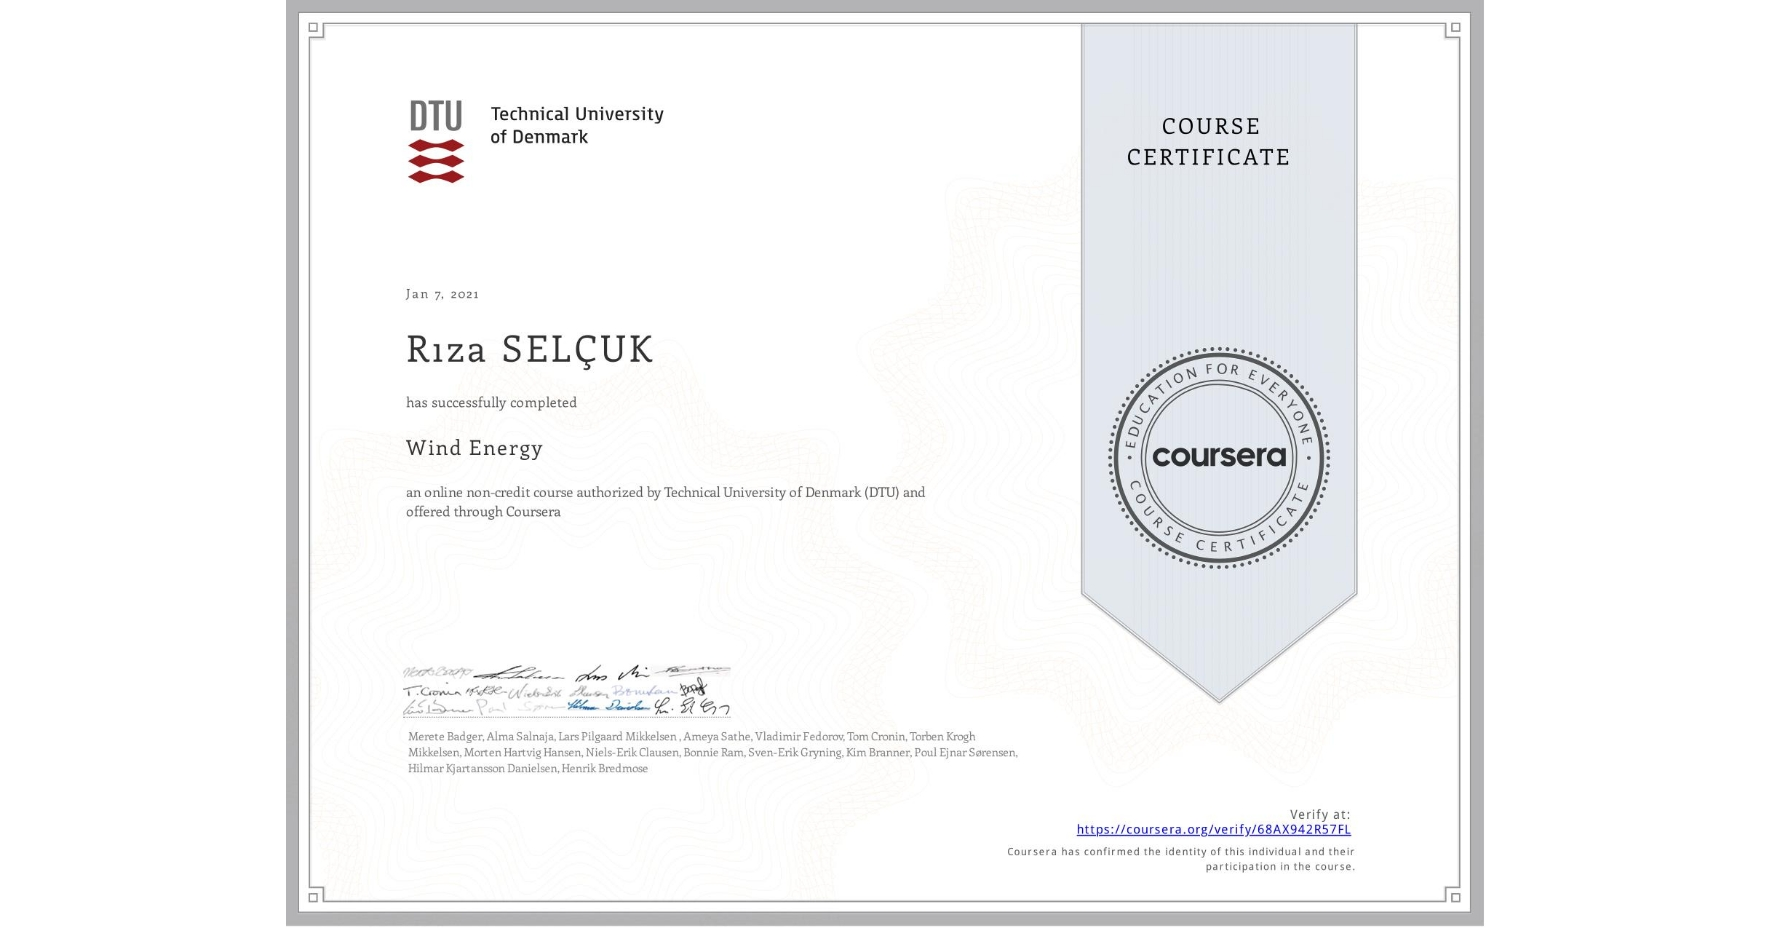 View certificate for Rıza SELÇUK, Wind Energy, an online non-credit course authorized by Technical University of Denmark (DTU) and offered through Coursera